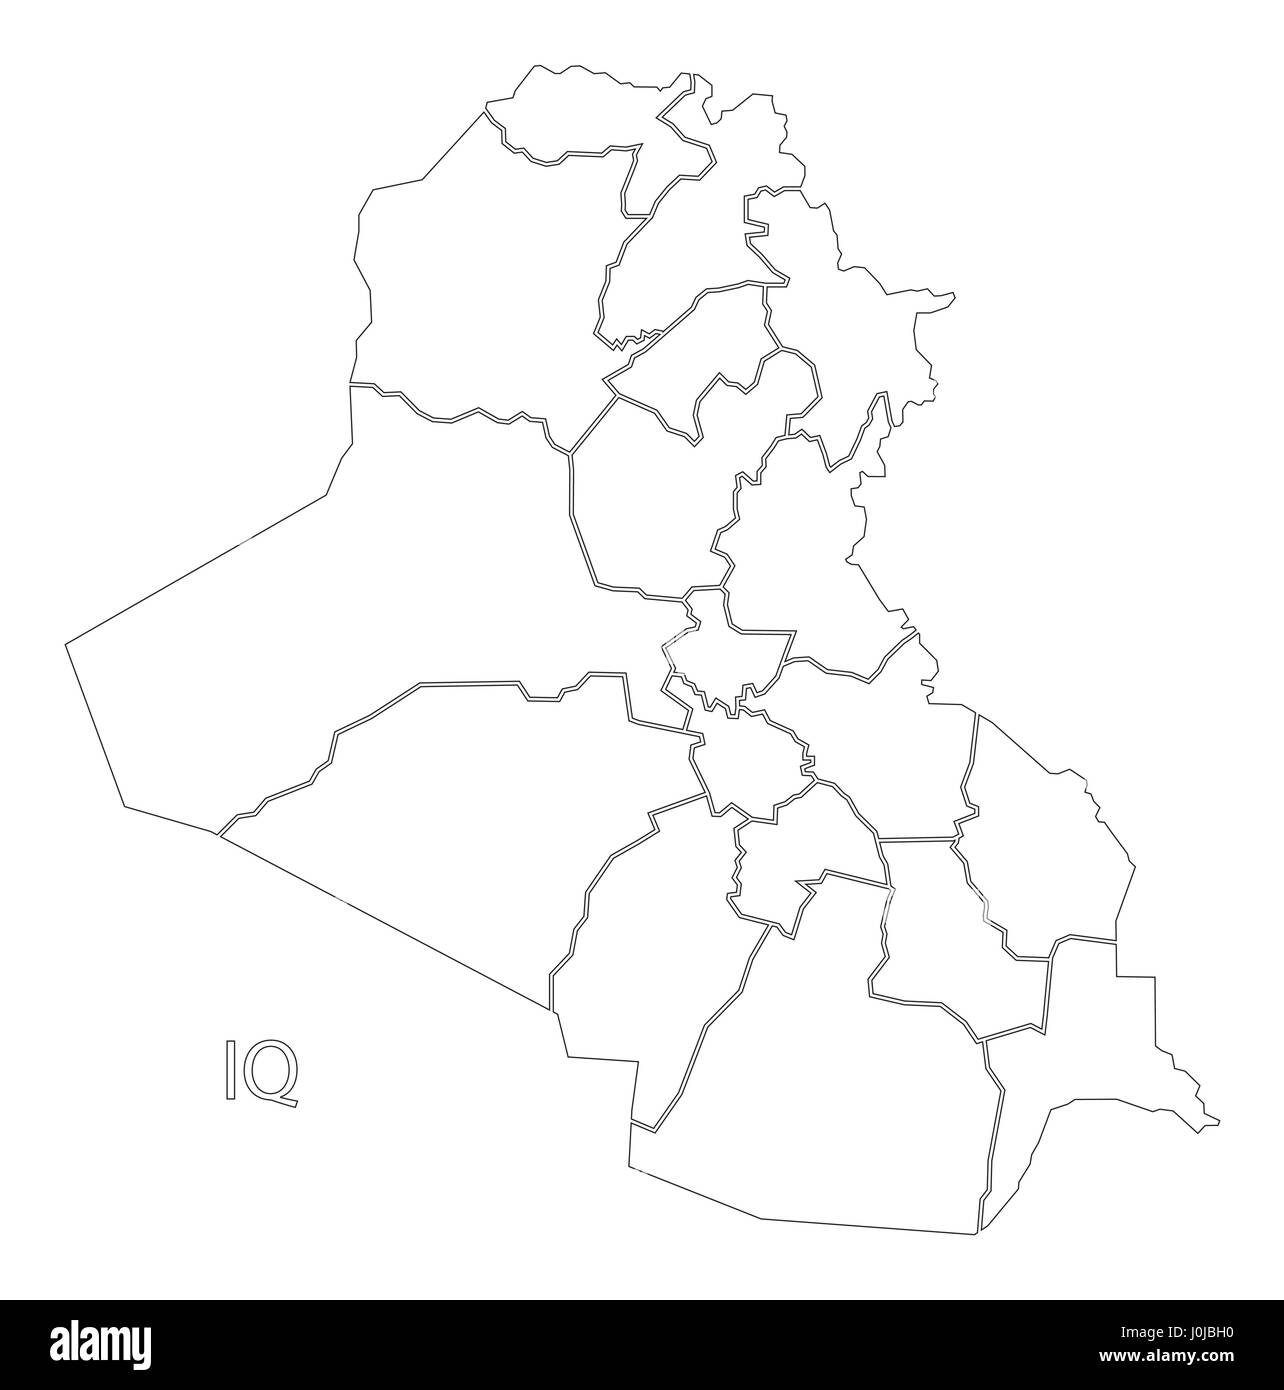 Iraq Outline Silhouette Map Illustration With Governorates Stock - Iraq map outline